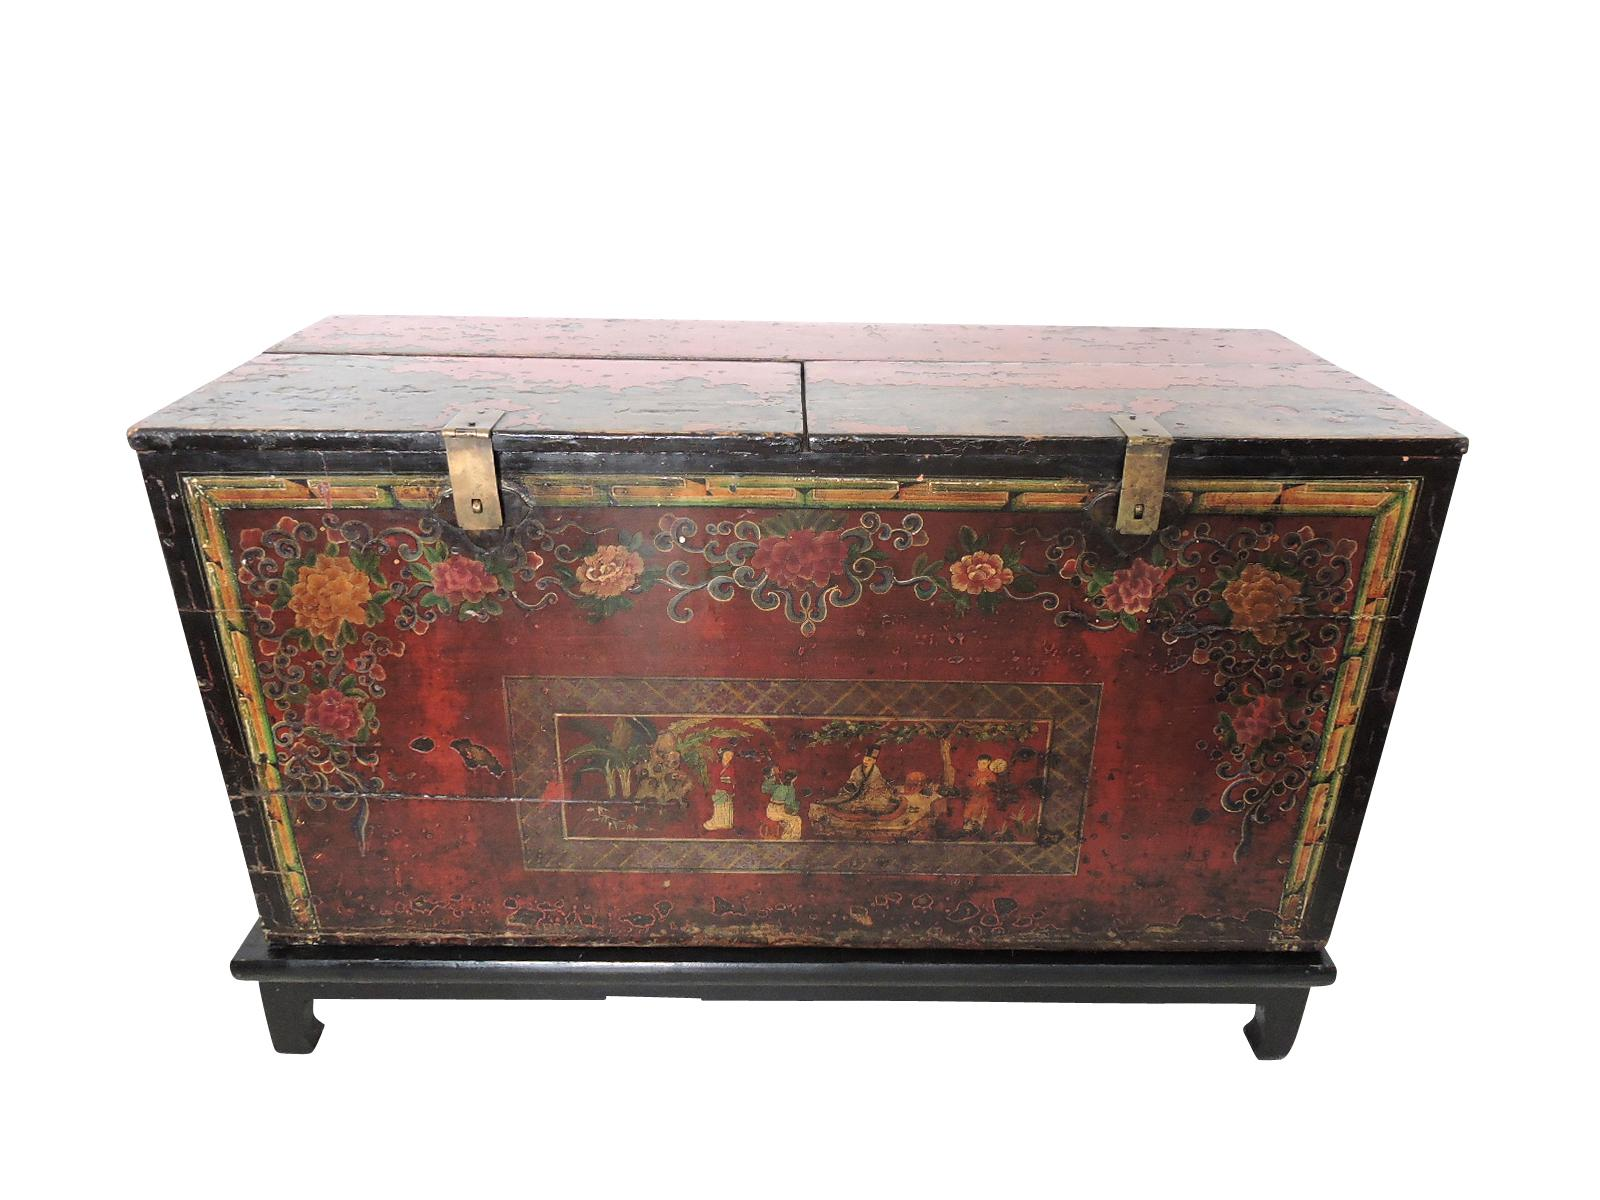 Historical Antique Chinese Storage Chest/Trunk   Image 2 Of 9